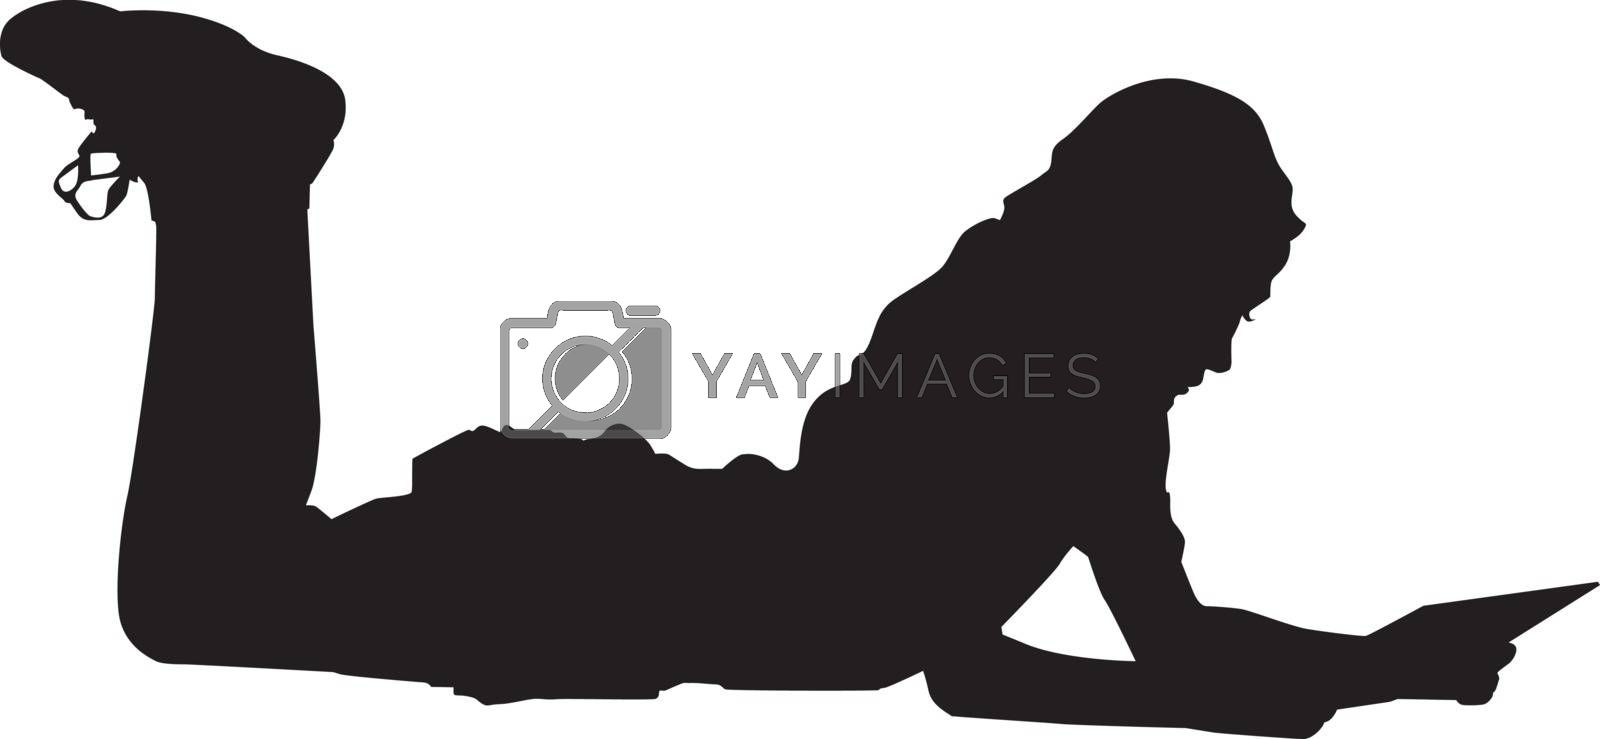 Silhouette of a girl lying on the floor, illustration, vector on white background.